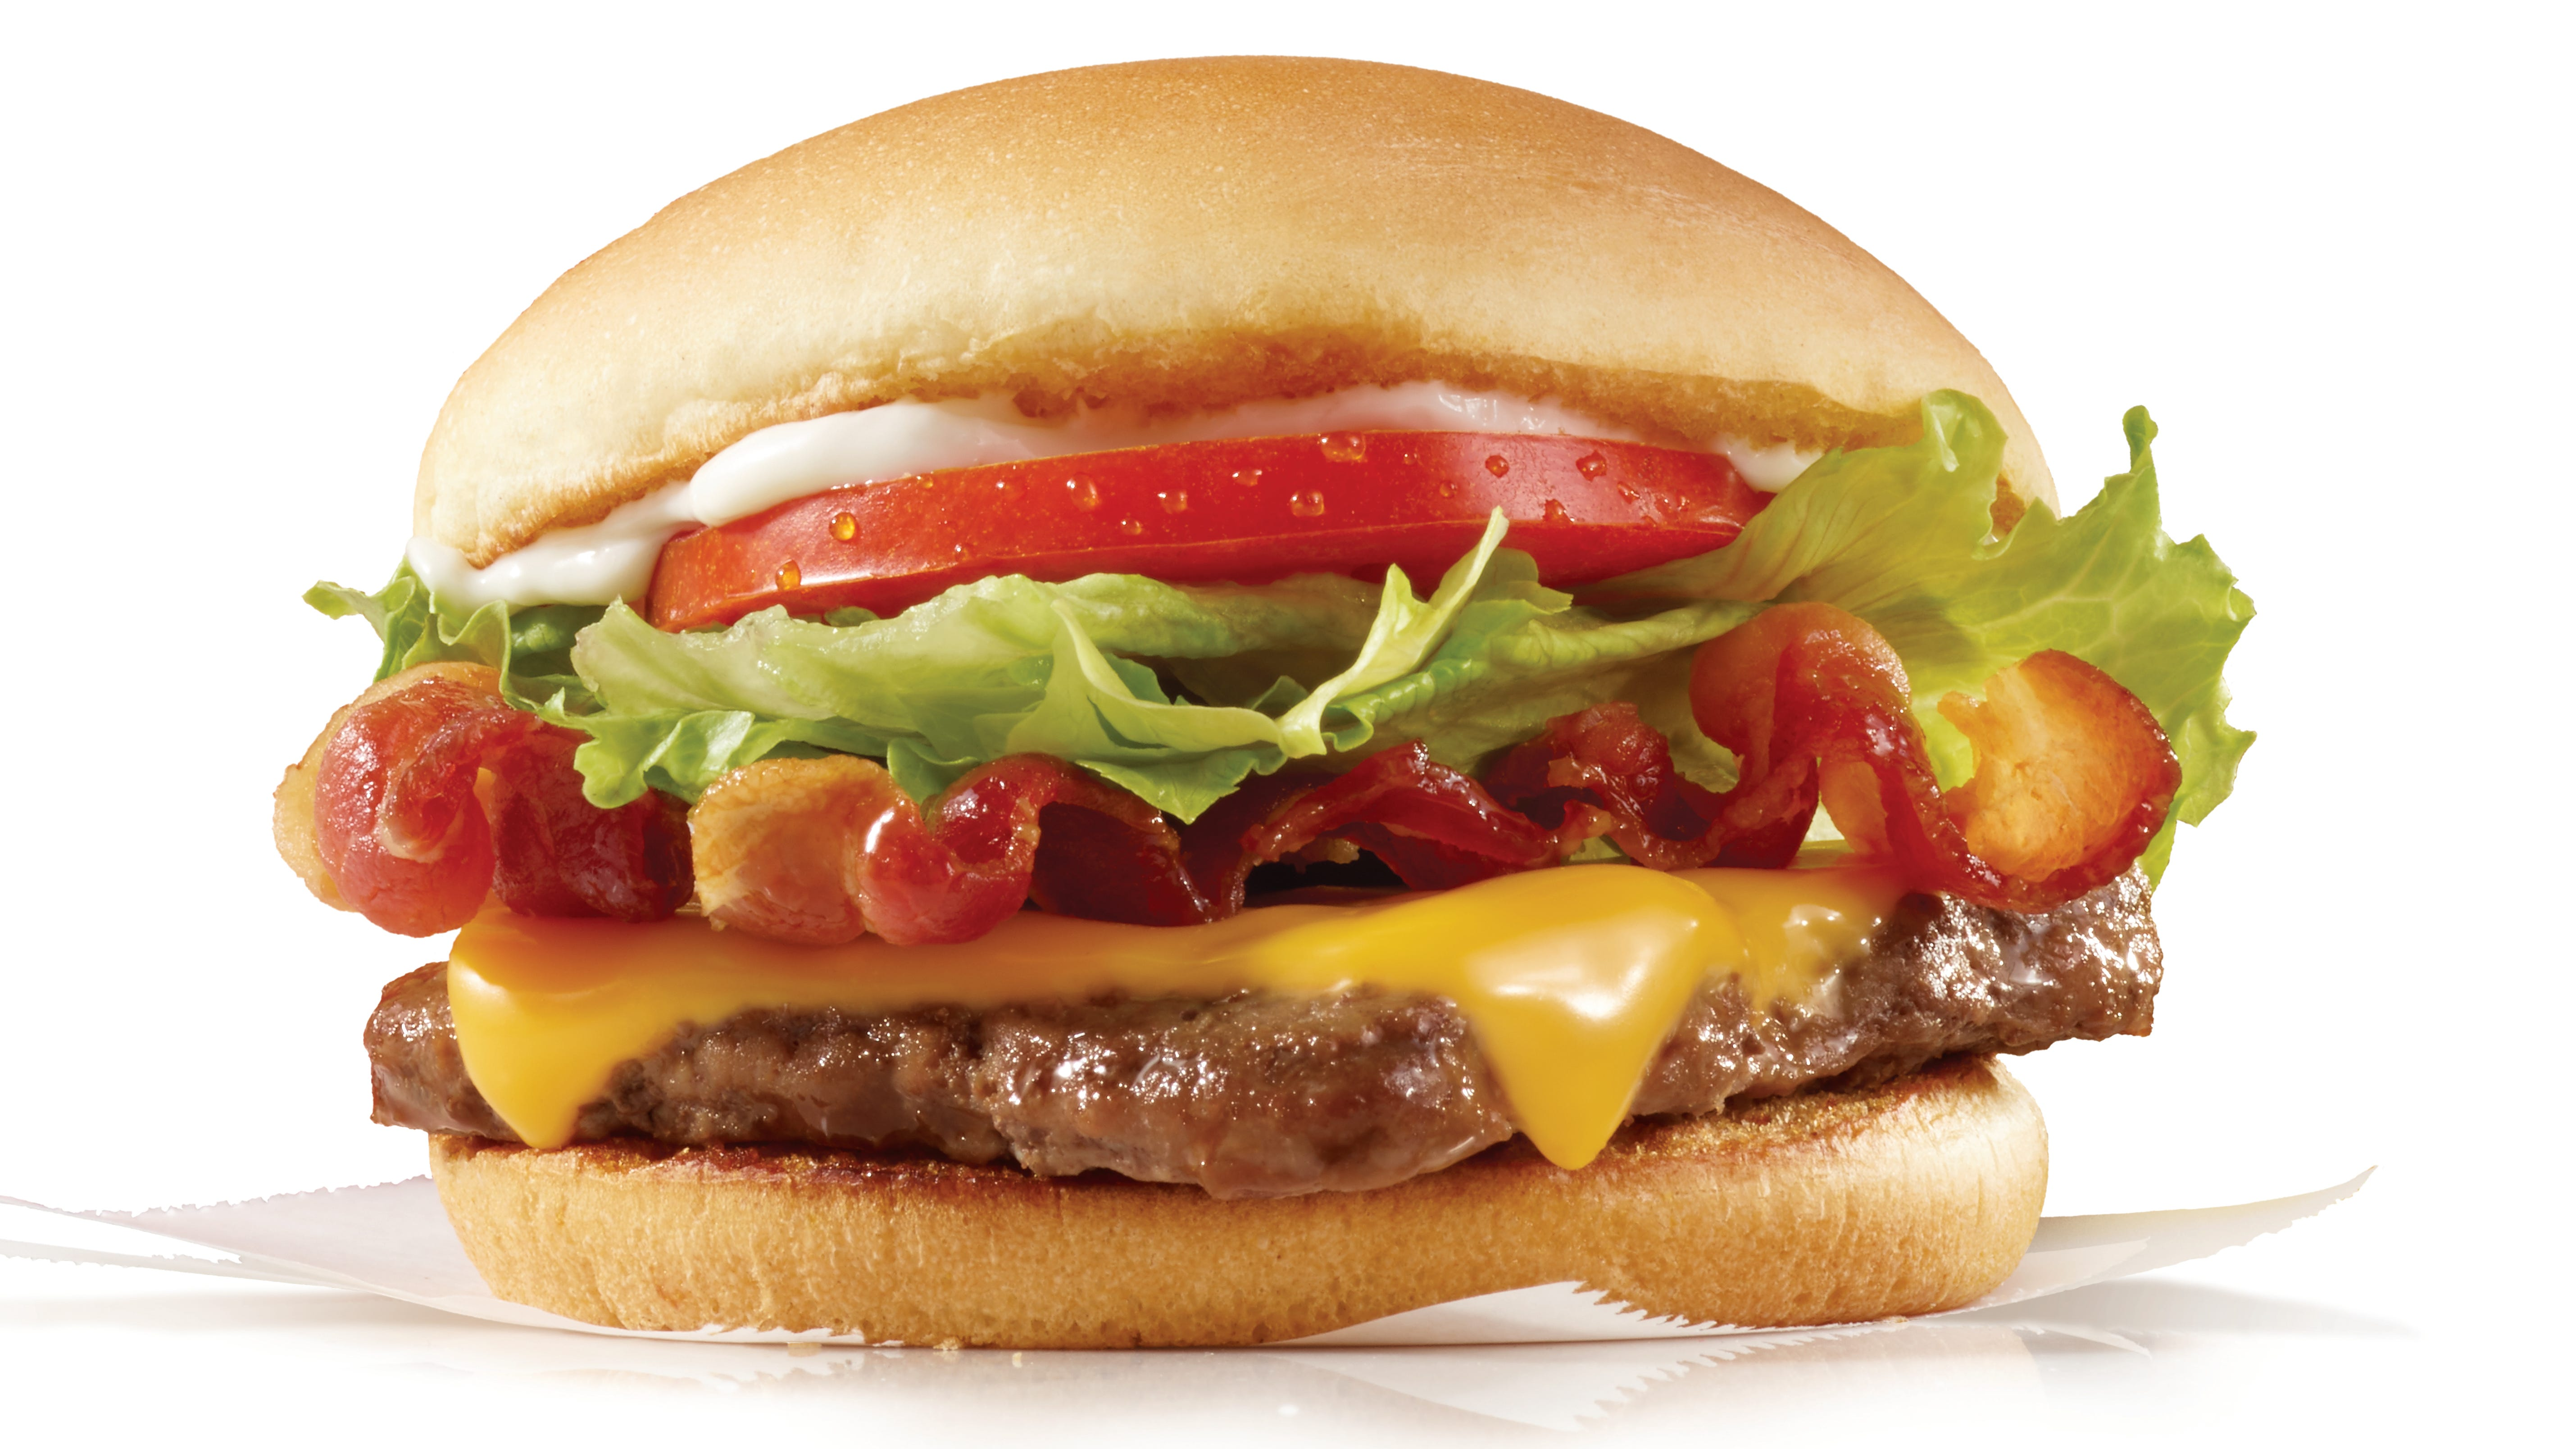 Wendy's is giving away free Junior Bacon Cheeseburgers through Nov. 23.